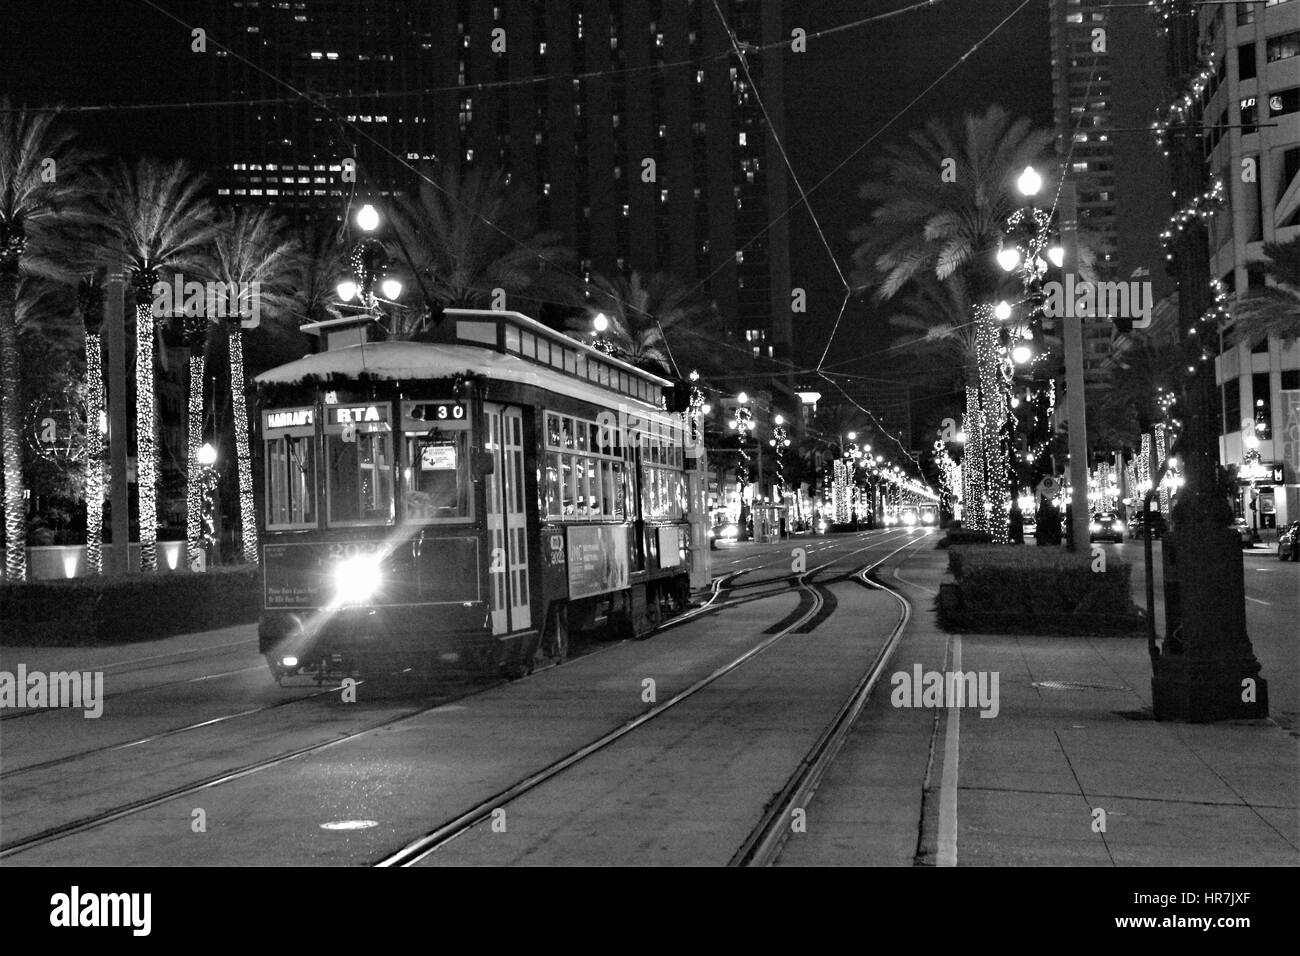 night life - Stock Image